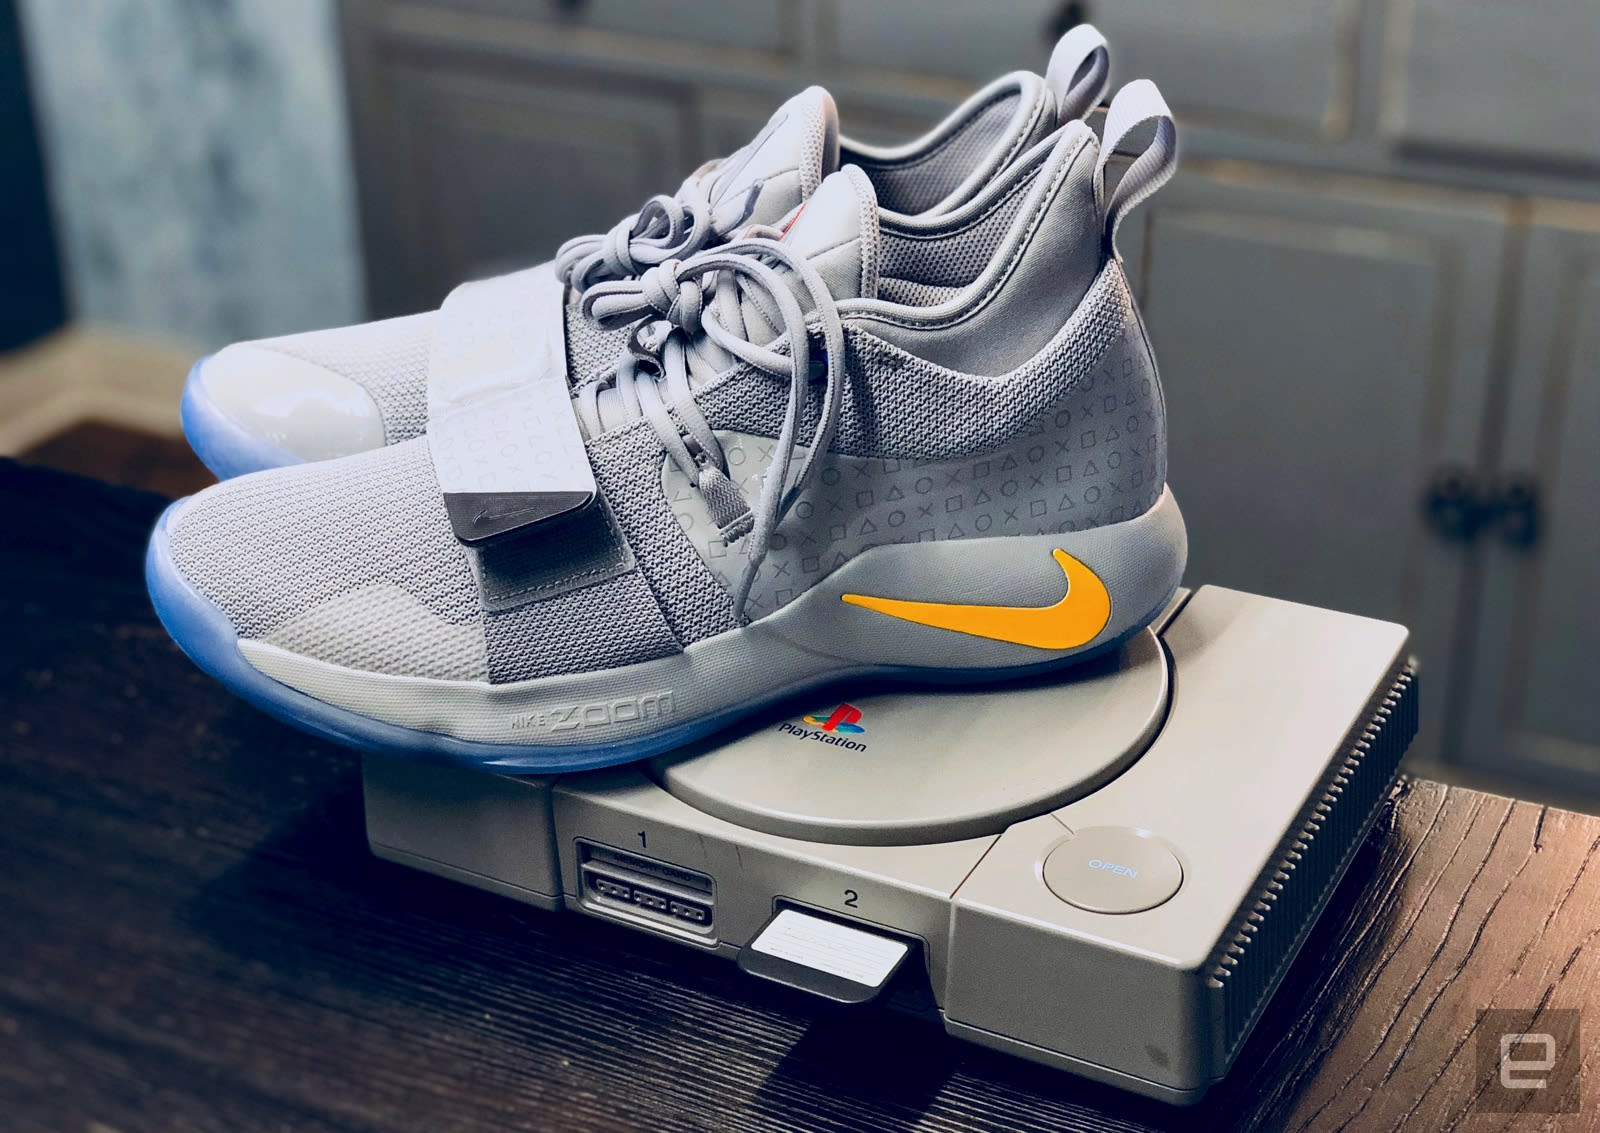 106a2d0340b4 Nike s new PlayStation sneakers pay homage to Sony s classic console